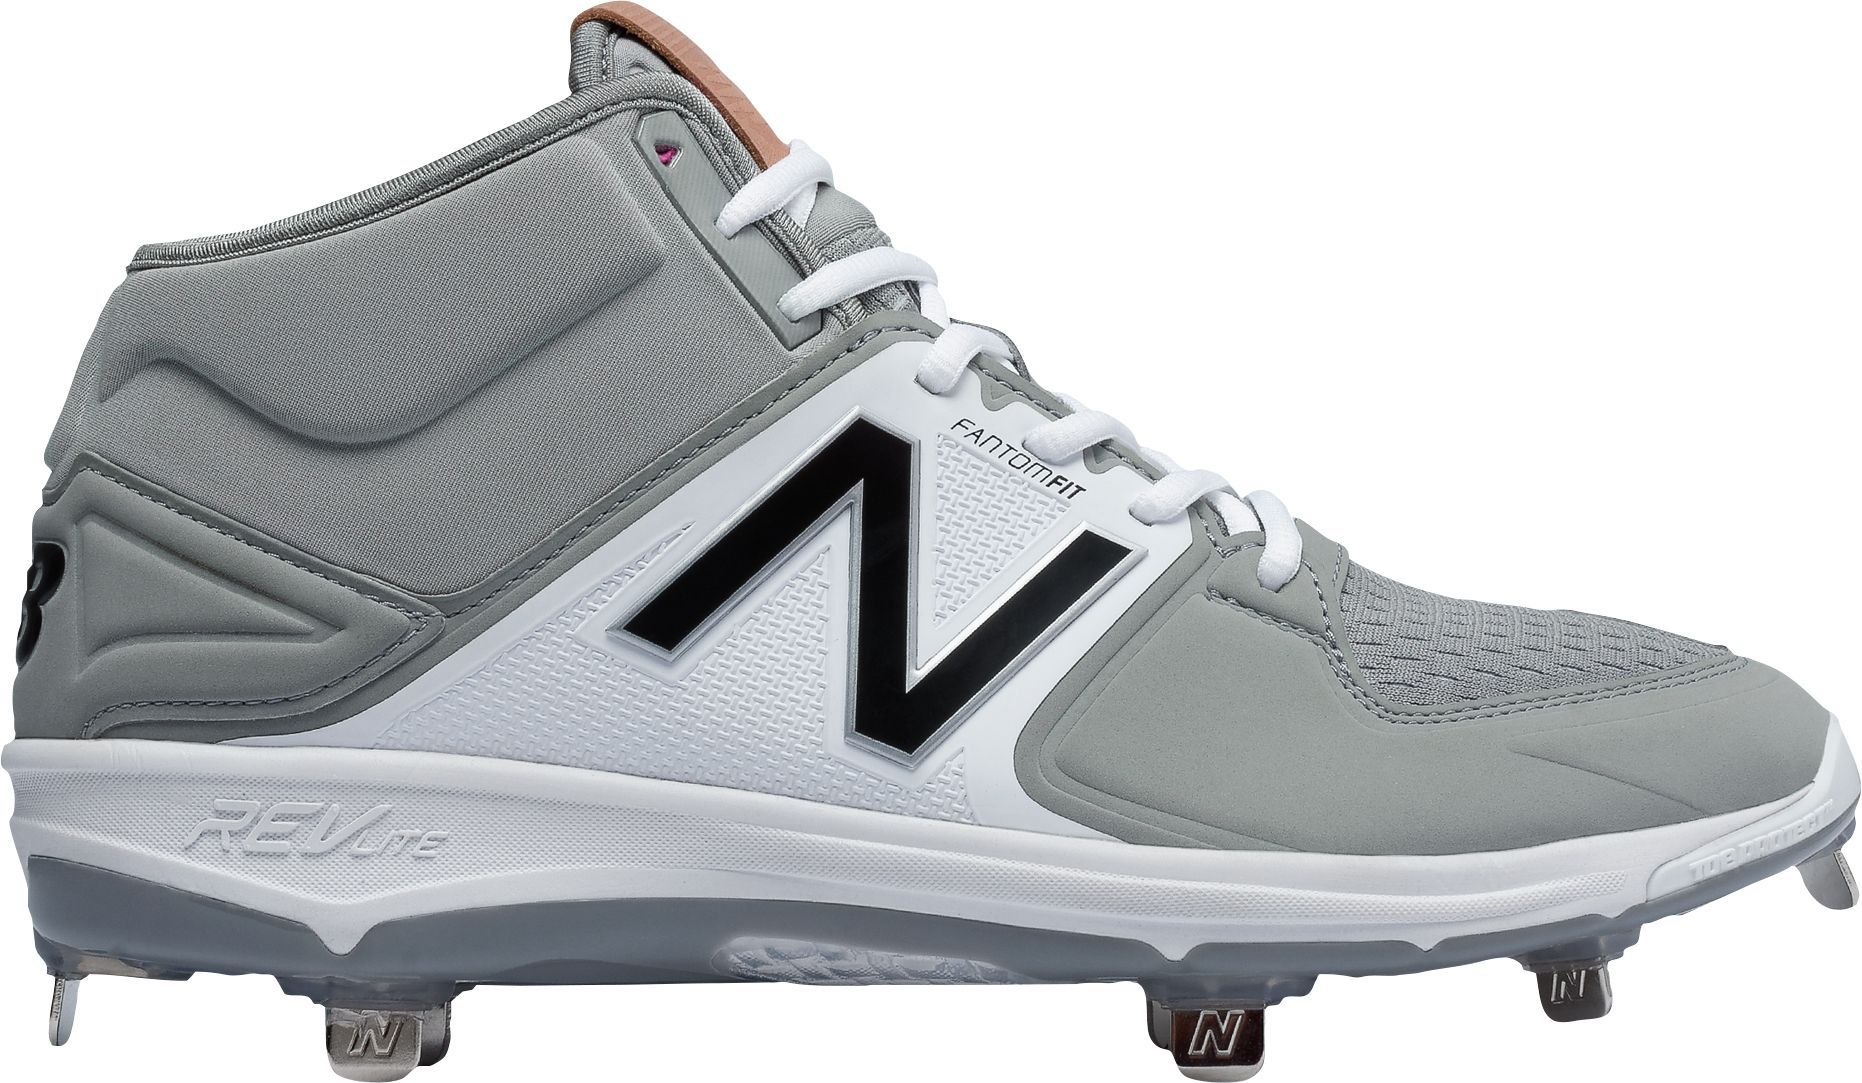 half off 02acb c988c New Balance Men s 3000 V3 Mid Metal Baseball Cleats, Size  10.0, Gray